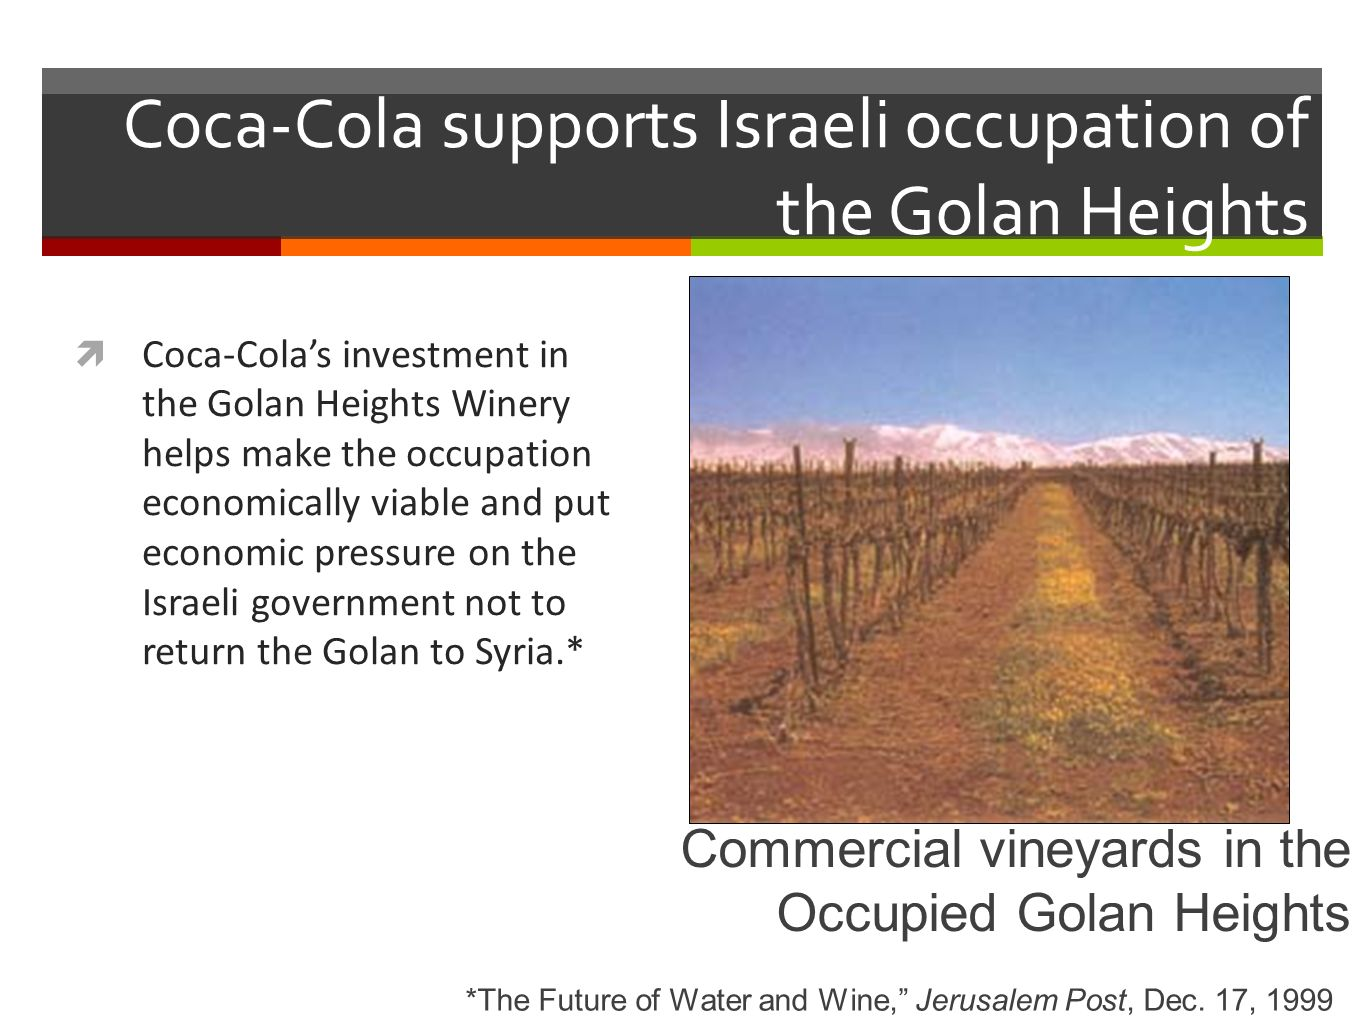 In 2003, Coca-Cola paid $8.4 million to the Israel Land Administration for land on which to build a Coca-Cola factory in Askalan.* A Coca-Cola factory *Elazar Levin, Jerusalem Post, June 15, 2003